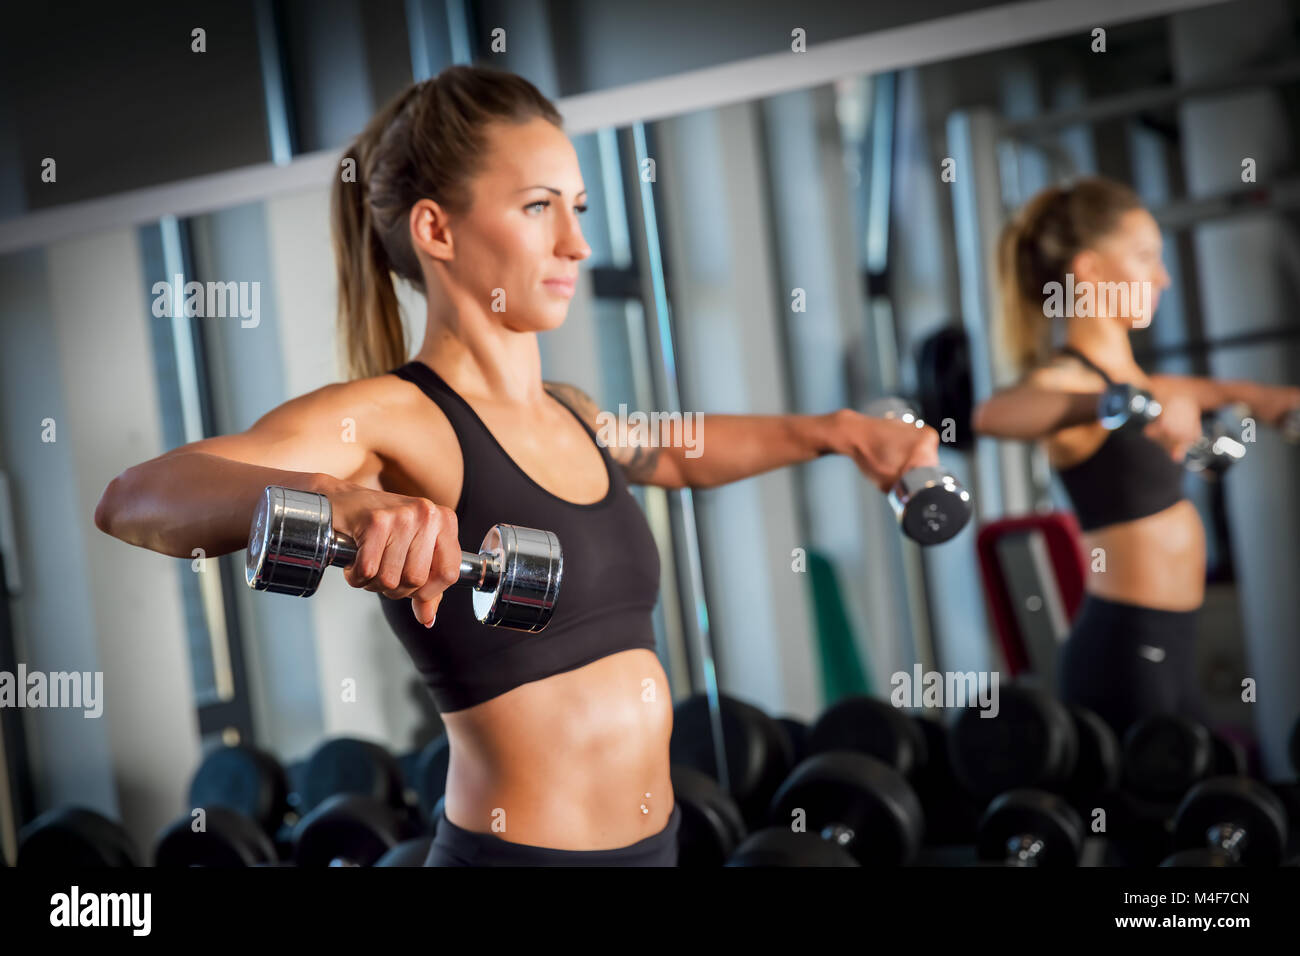 Attractive woman weightlifting at the gym. - Stock Image